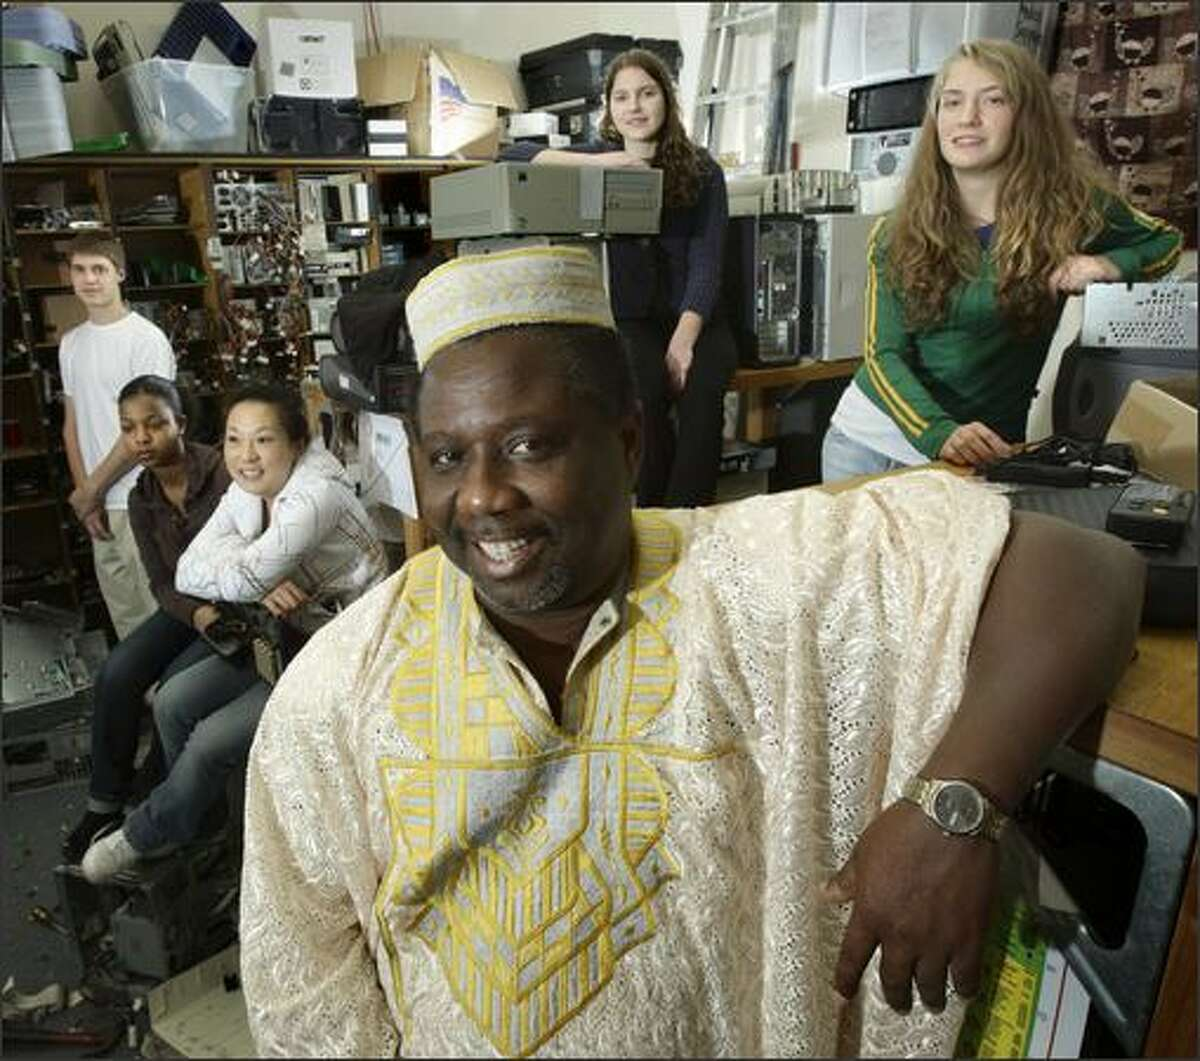 Samuel Labi, a Garfield High School counselor and chief of the Ghanaian village of Kyirenkum, will go to the West African nation next week with students including Kevin Marck, left, Dlena Teklai, Hanah Moriguchi, Caitlin Anderson and Miran McPoland.